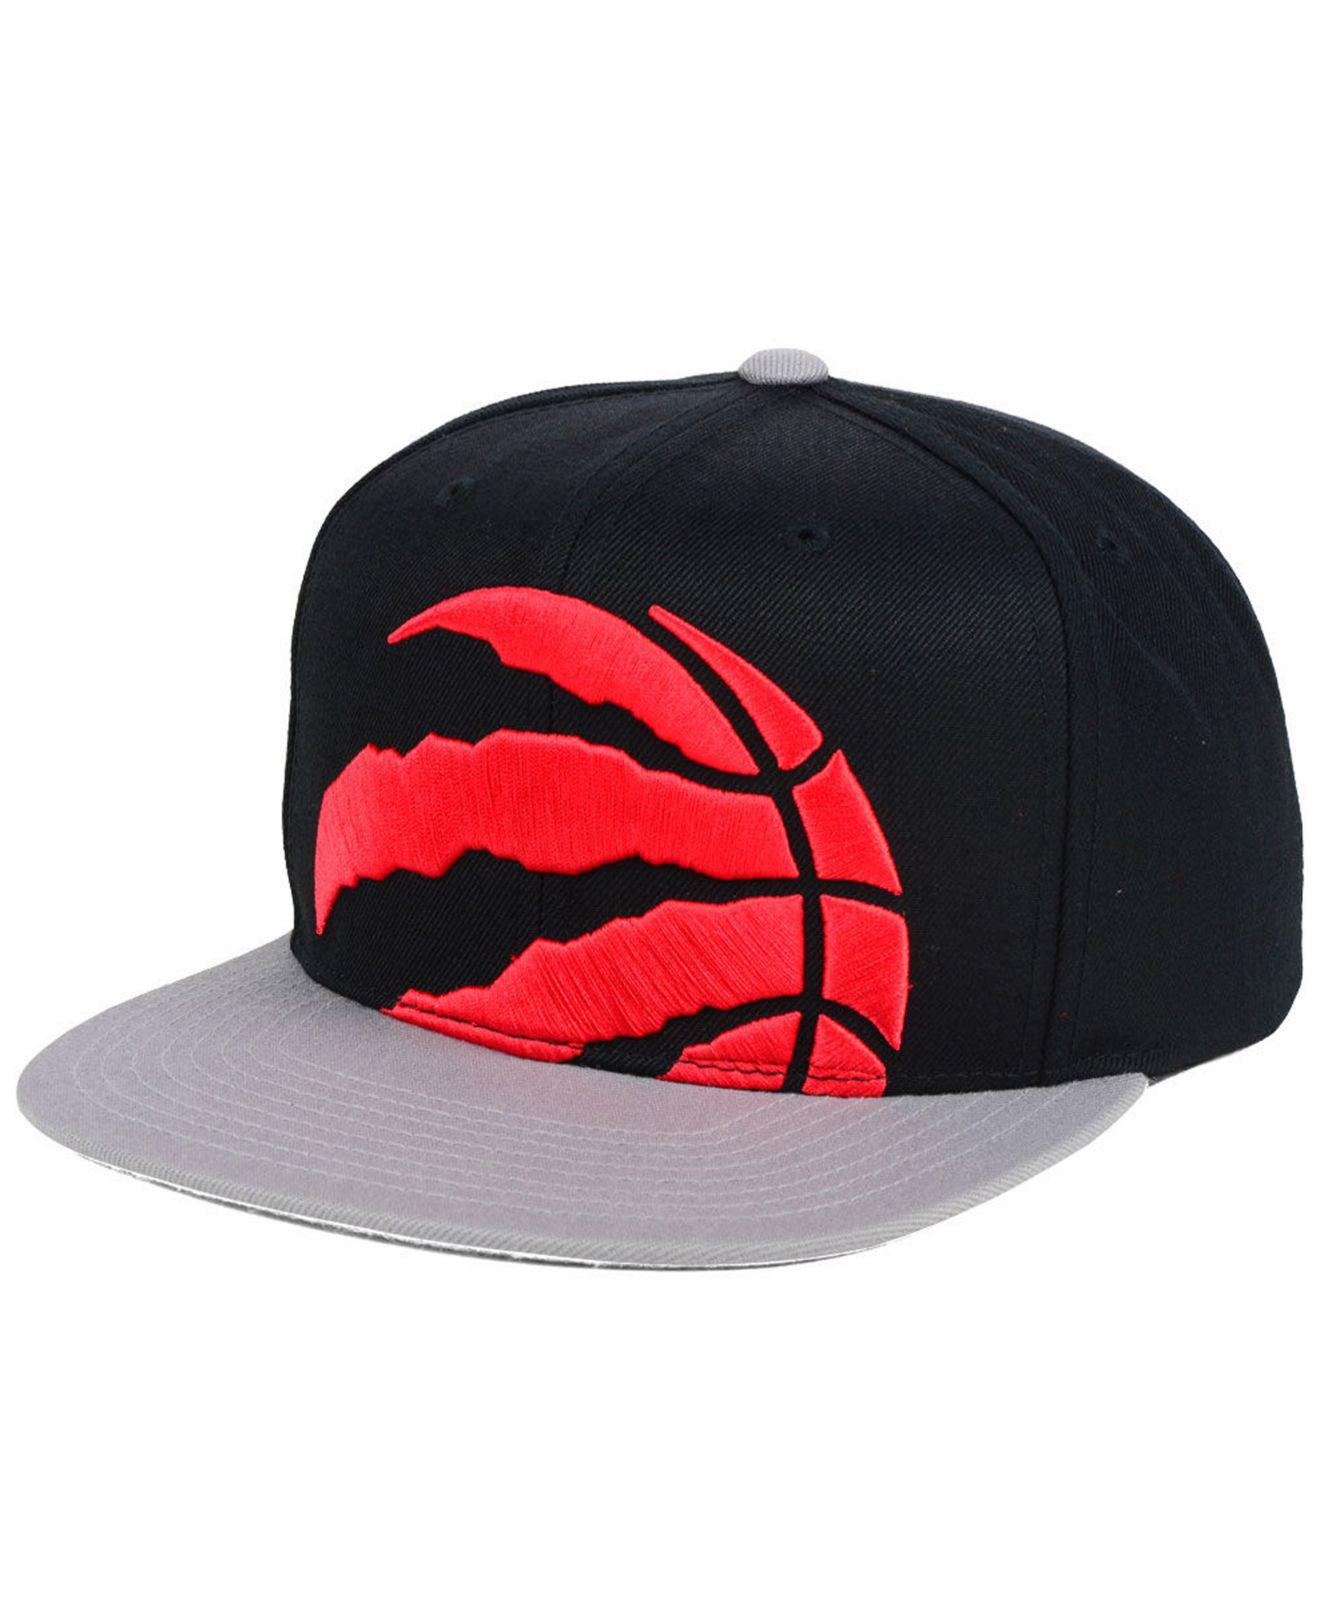 competitive price 24a0c ce765 Mitchell   Ness. Men s Toronto Raptors Cropped Xl Logo Snapback Cap